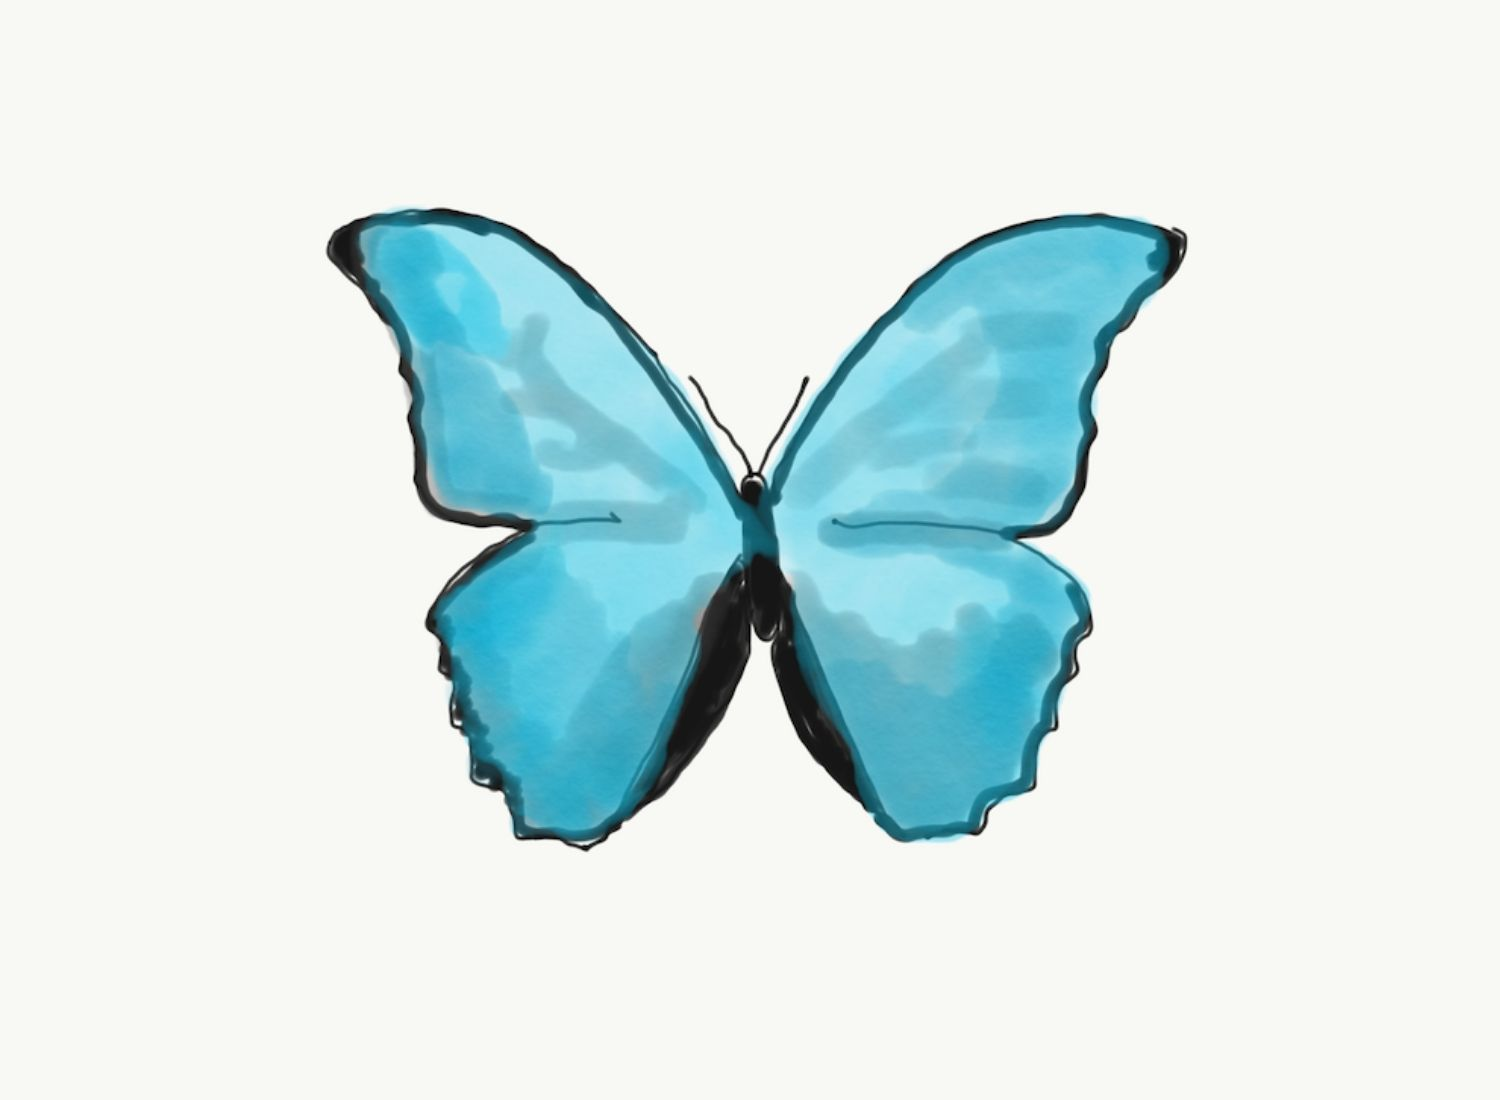 The Butterfly Effect - All Actions Matter